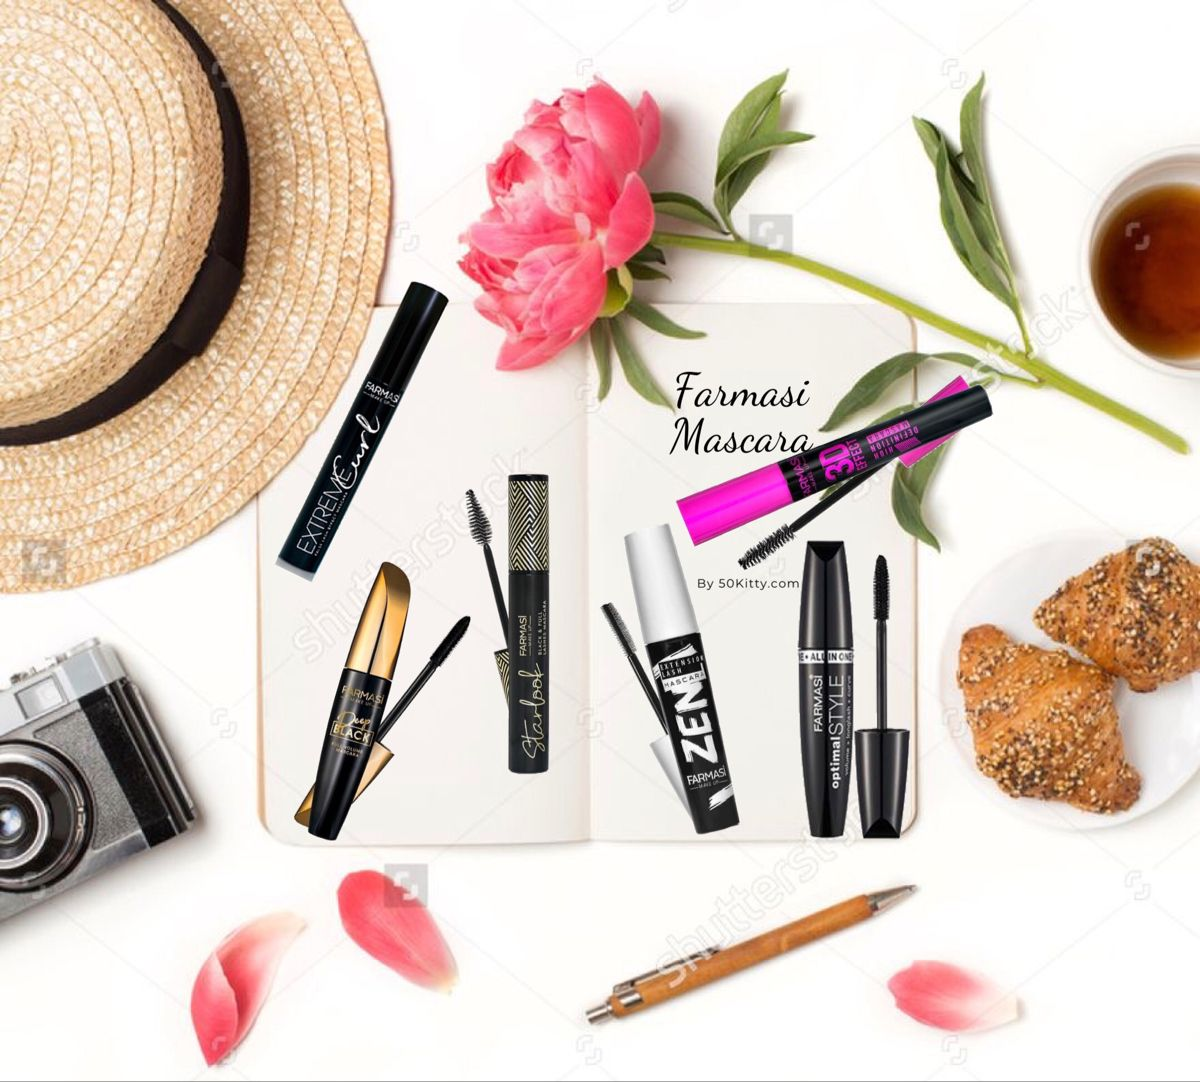 Check out Farmasi reviews & more in 2020 Cosmetics